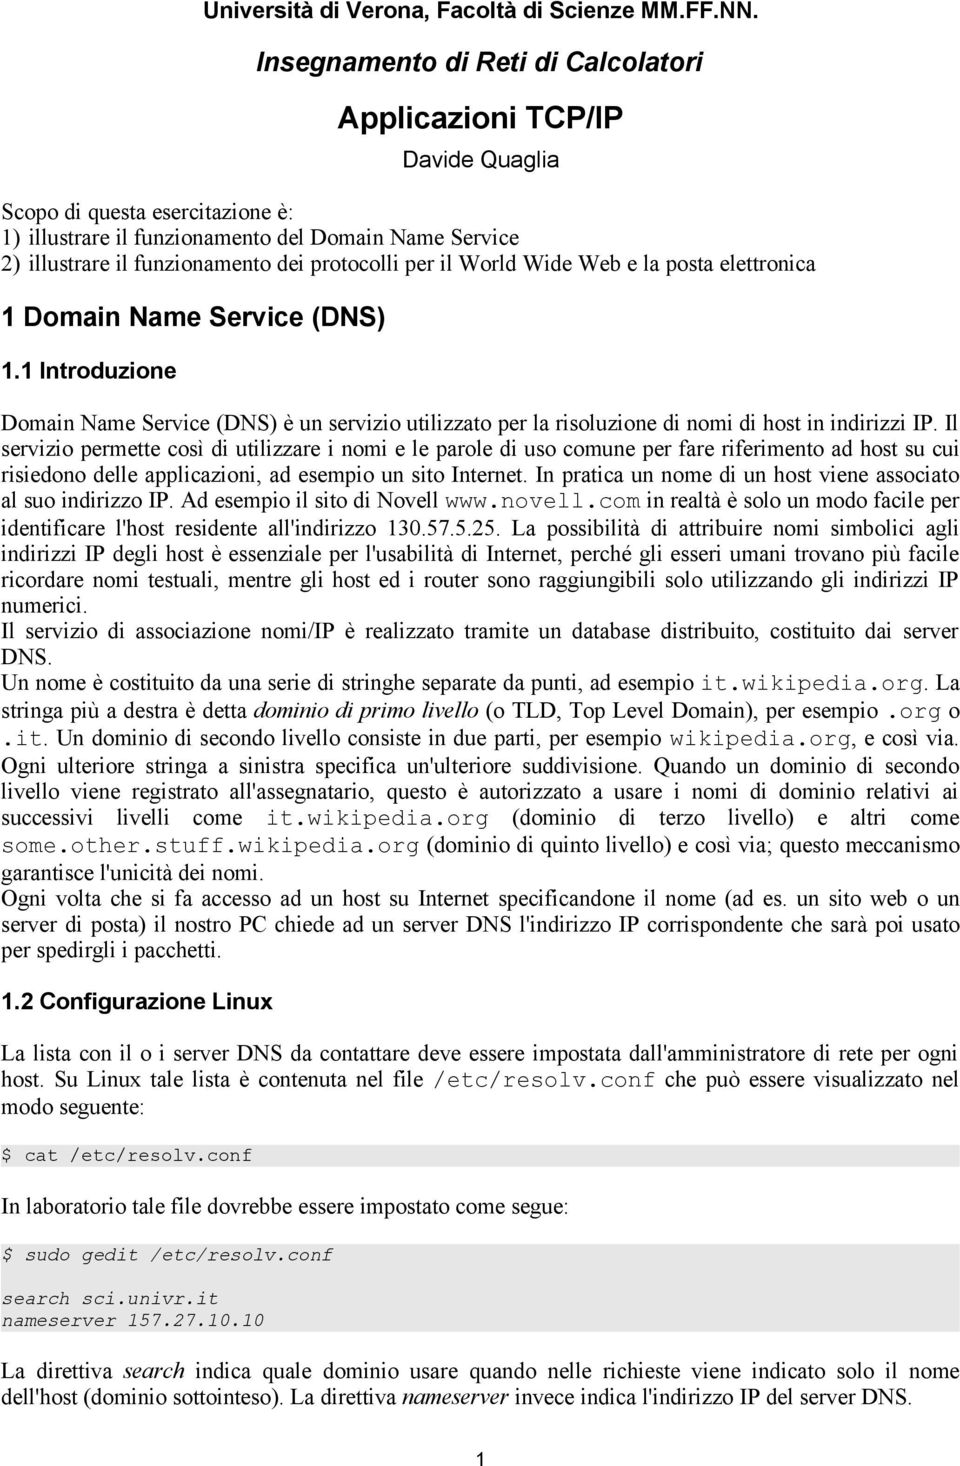 protocolli per il World Wide Web e la posta elettronica 1 Domain Name Service (DNS) 1.